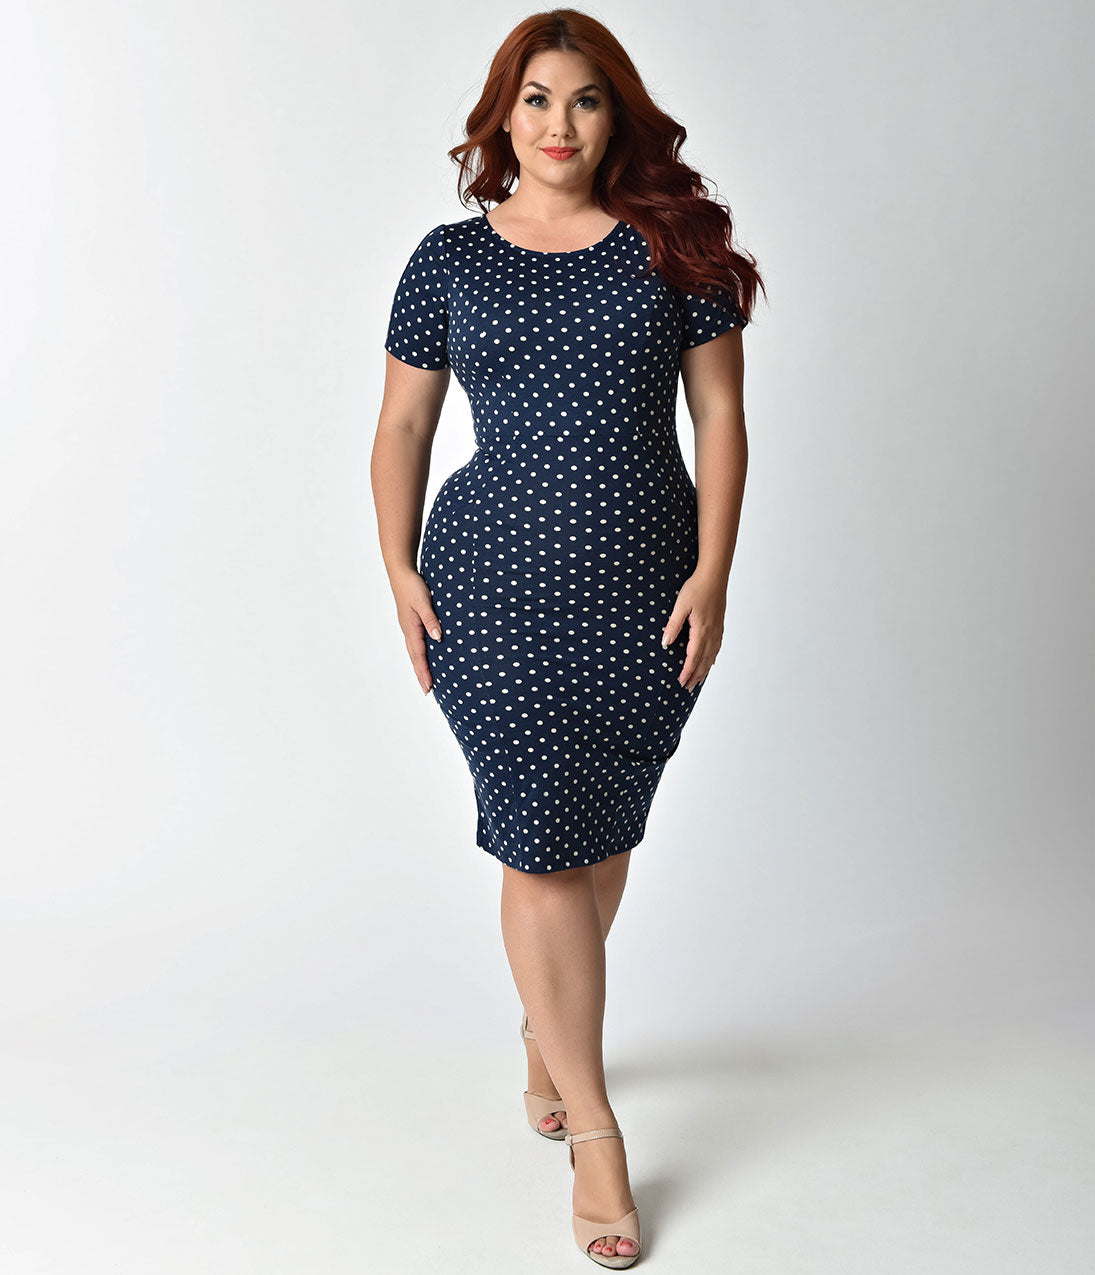 Polka Dot Dresses: 20s, 30s, 40s, 50s, 60s Unique Vintage Plus Size 1960S Style Navy  Ivory Dotted Short Sleeve Stretch Mod Wiggle Dress $52.00 AT vintagedancer.com